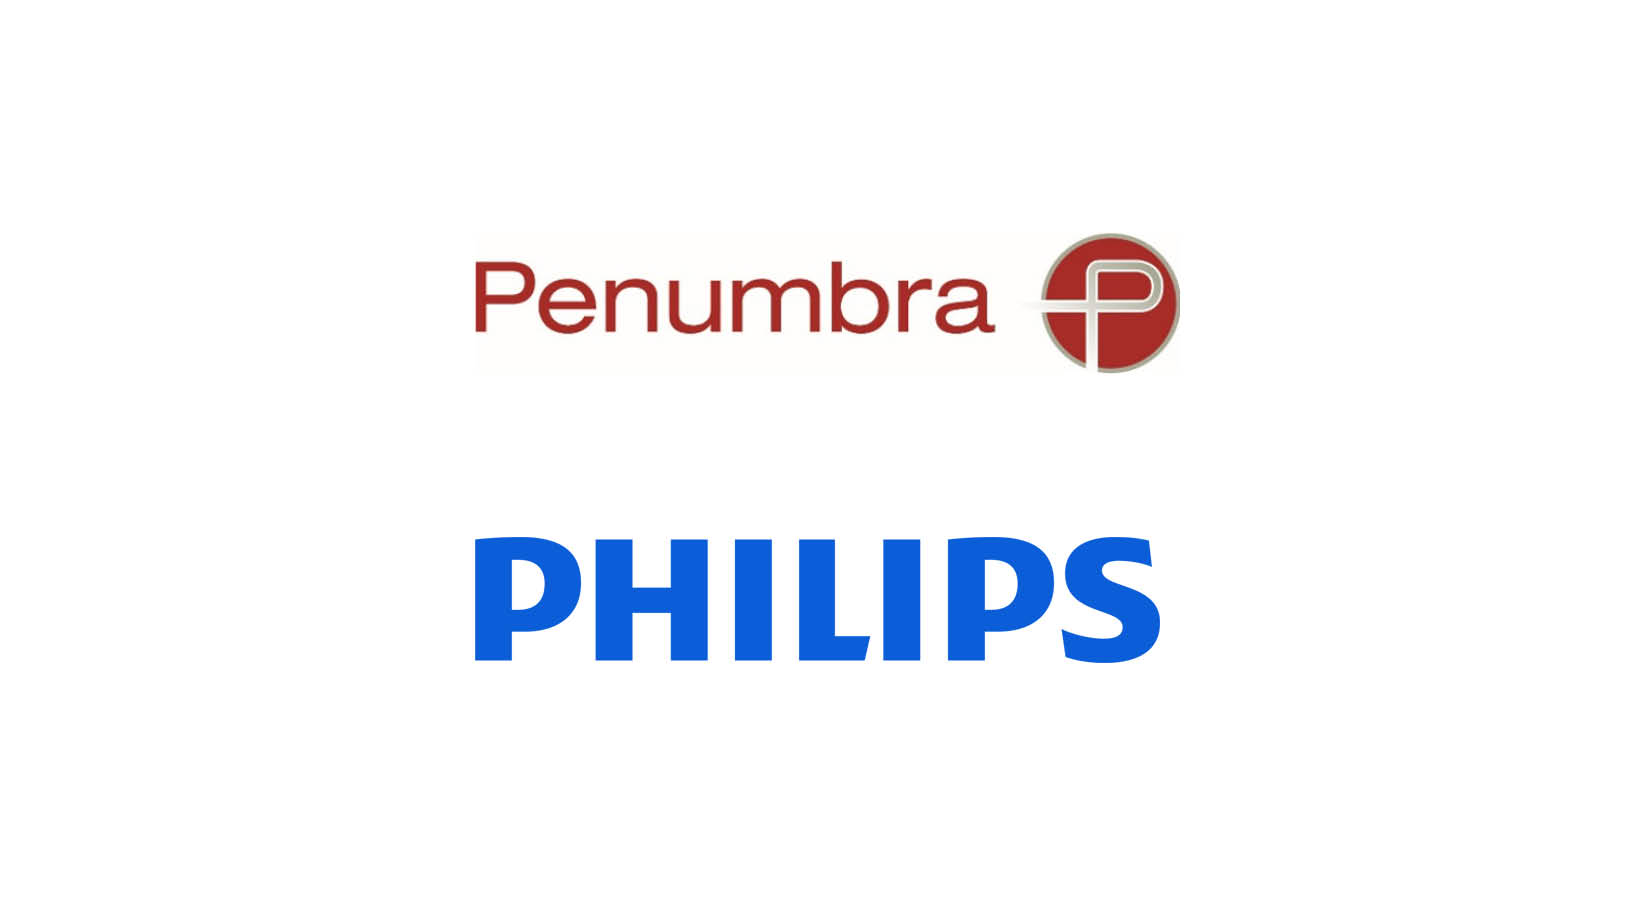 Penumbra and Philips, the Bronze Level Sponsors of the Congress 2020.